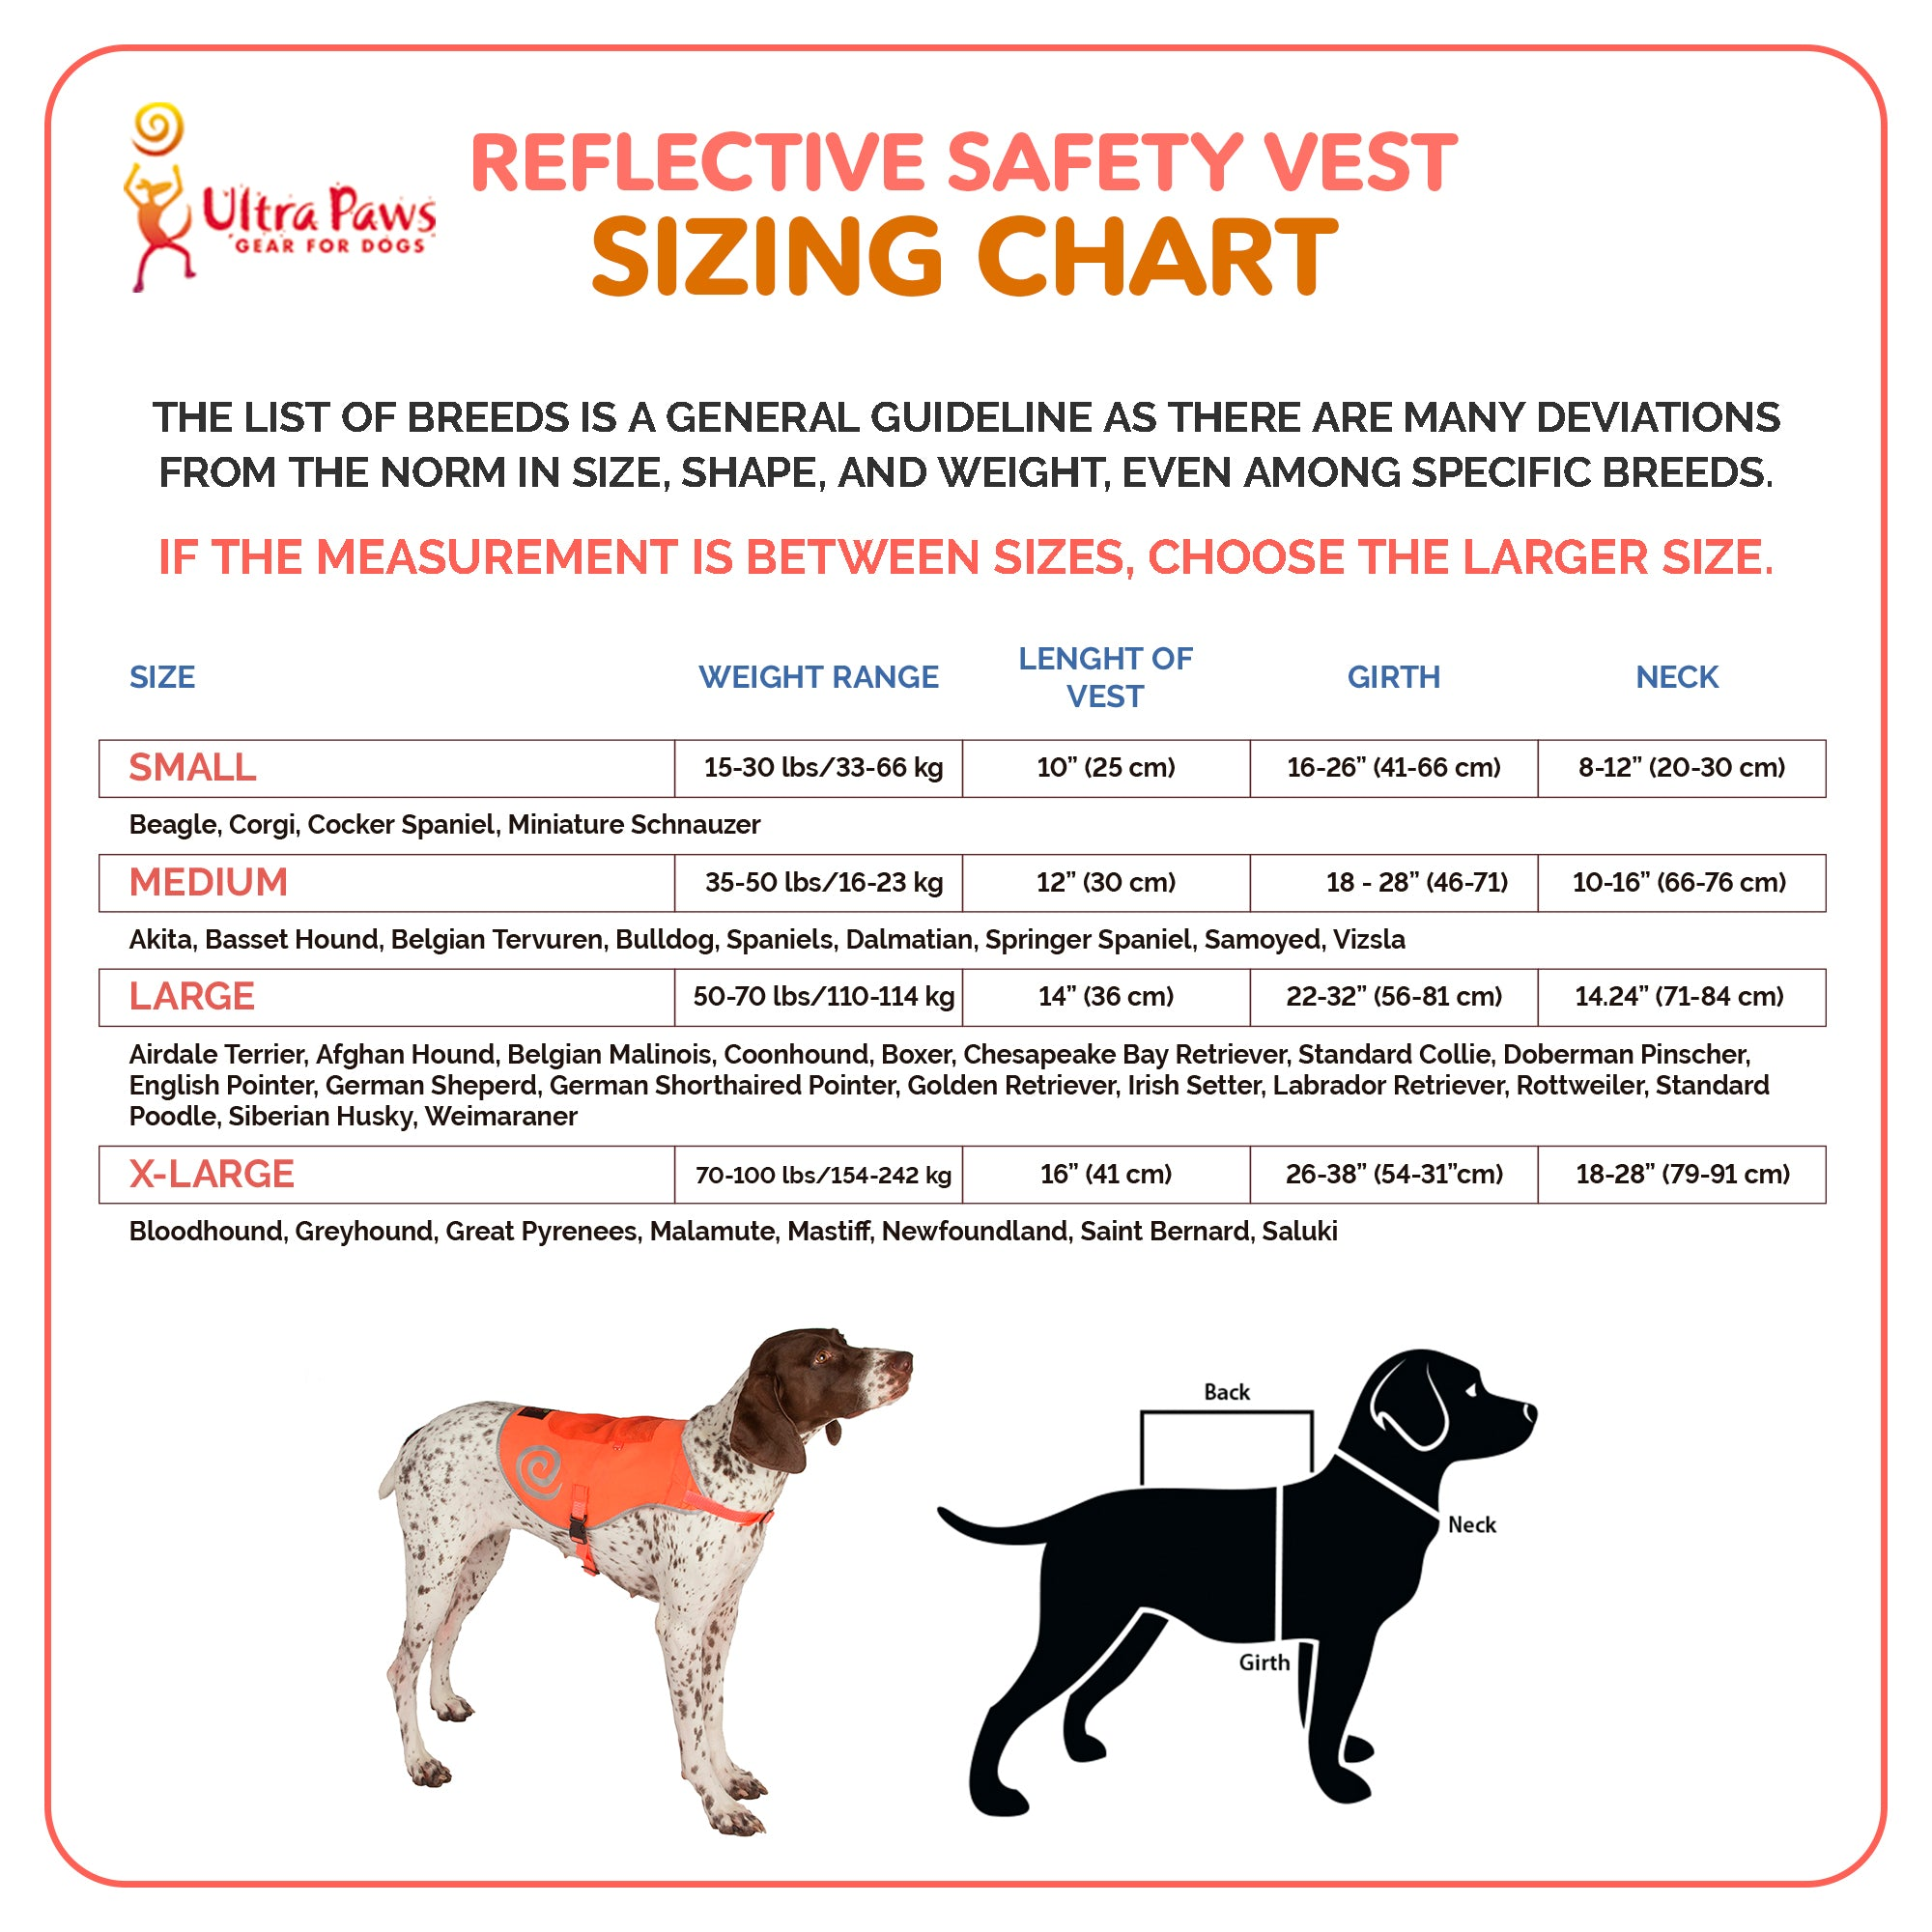 Ultra Paws Reflective Safety Vest Sizing Chart